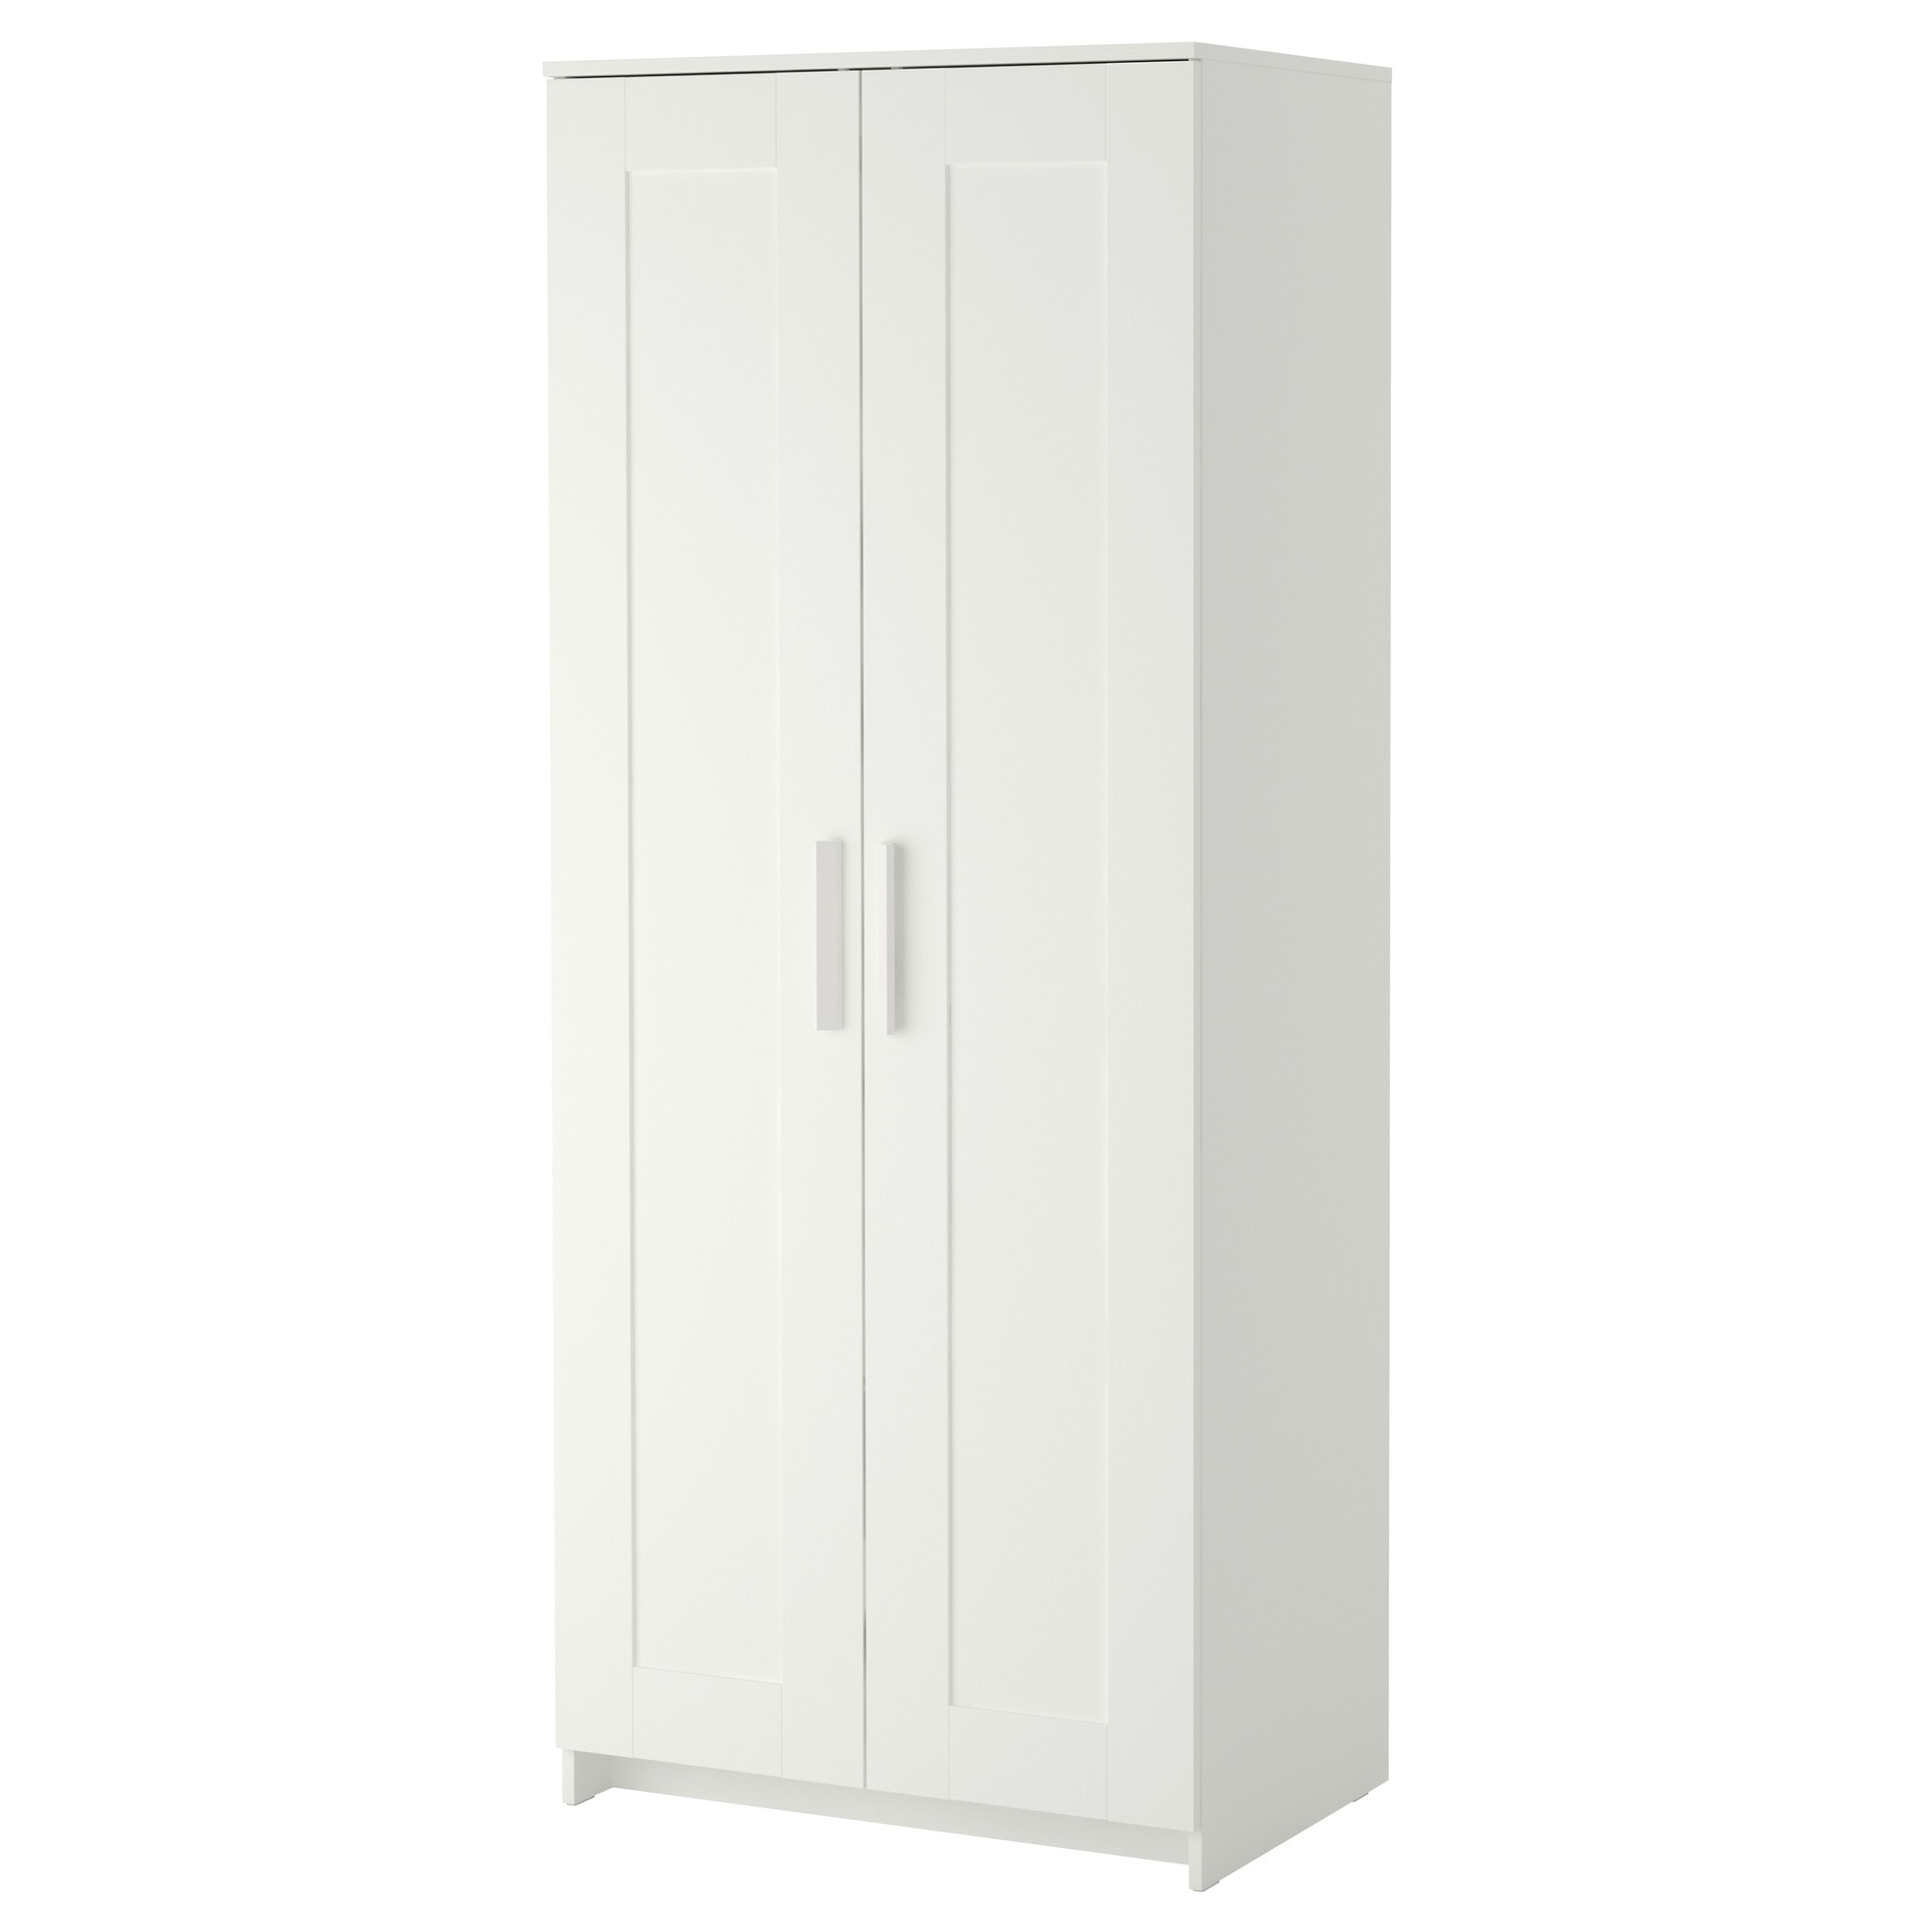 Beautiful Armoire 2 Portes Ikea #1: 2017-08-28T05:00-07:00 ...